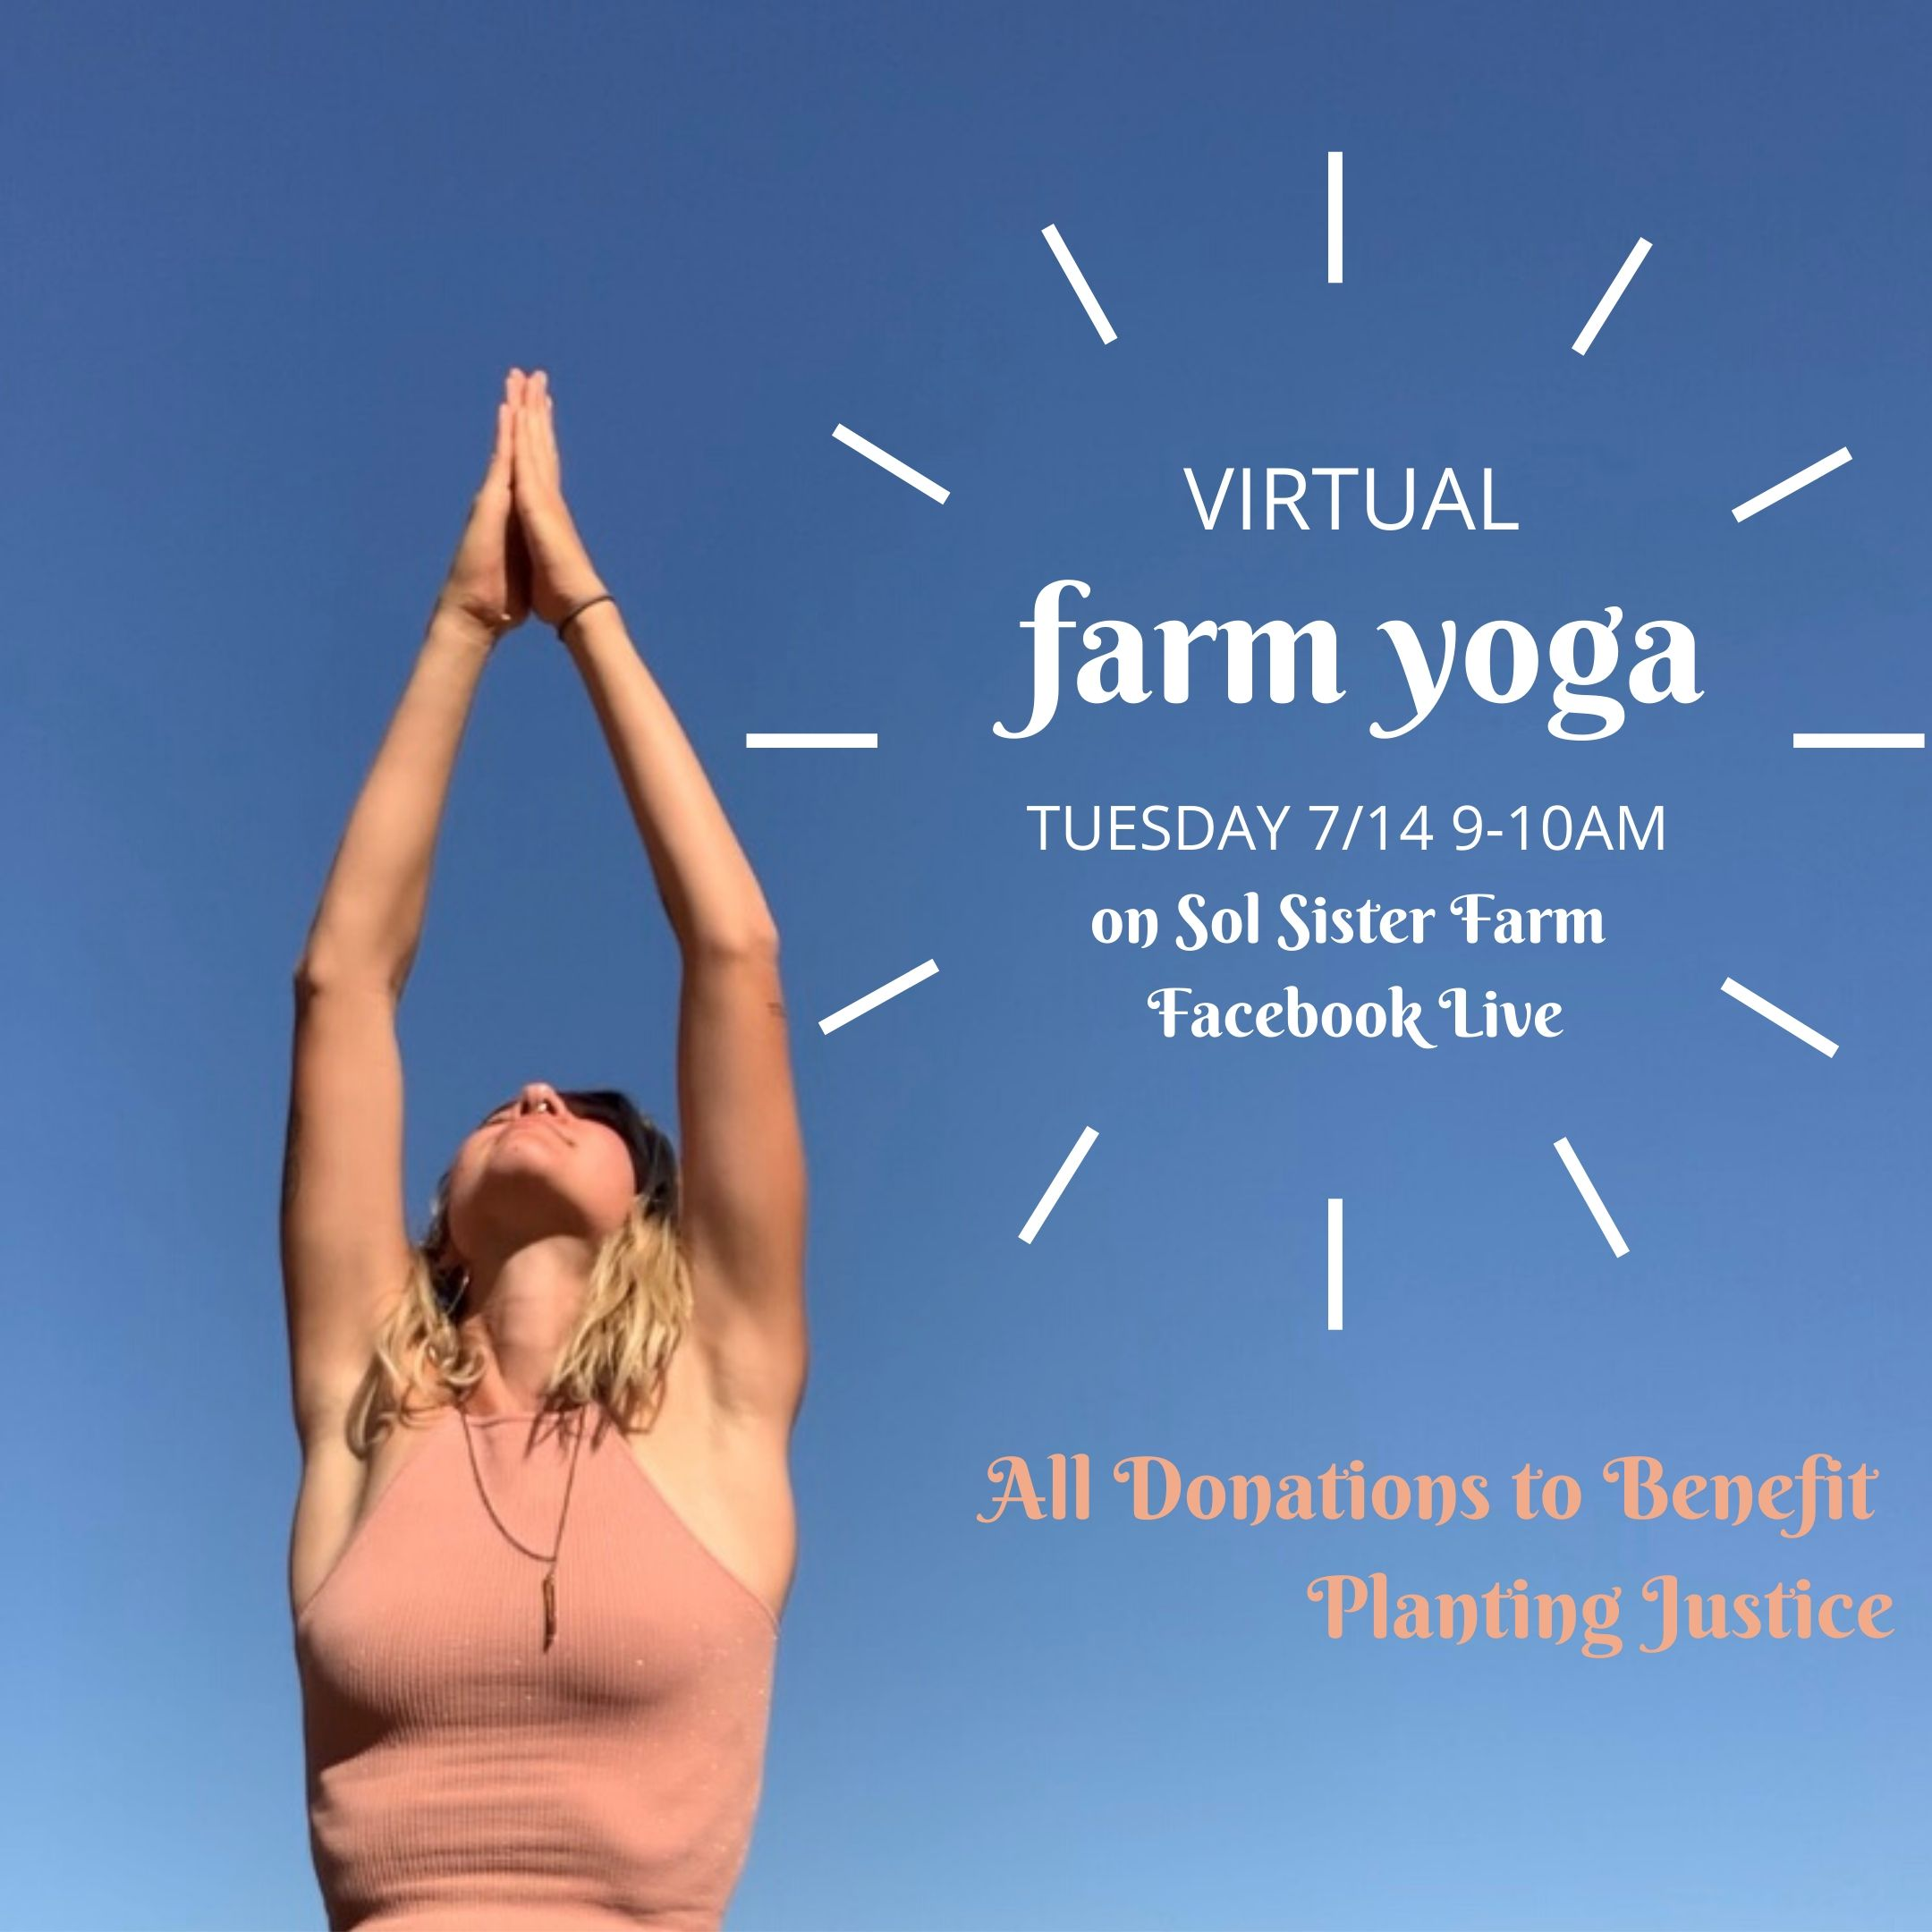 Farm Happening: Donate to Planting Justice and Virtual Farm Yoga